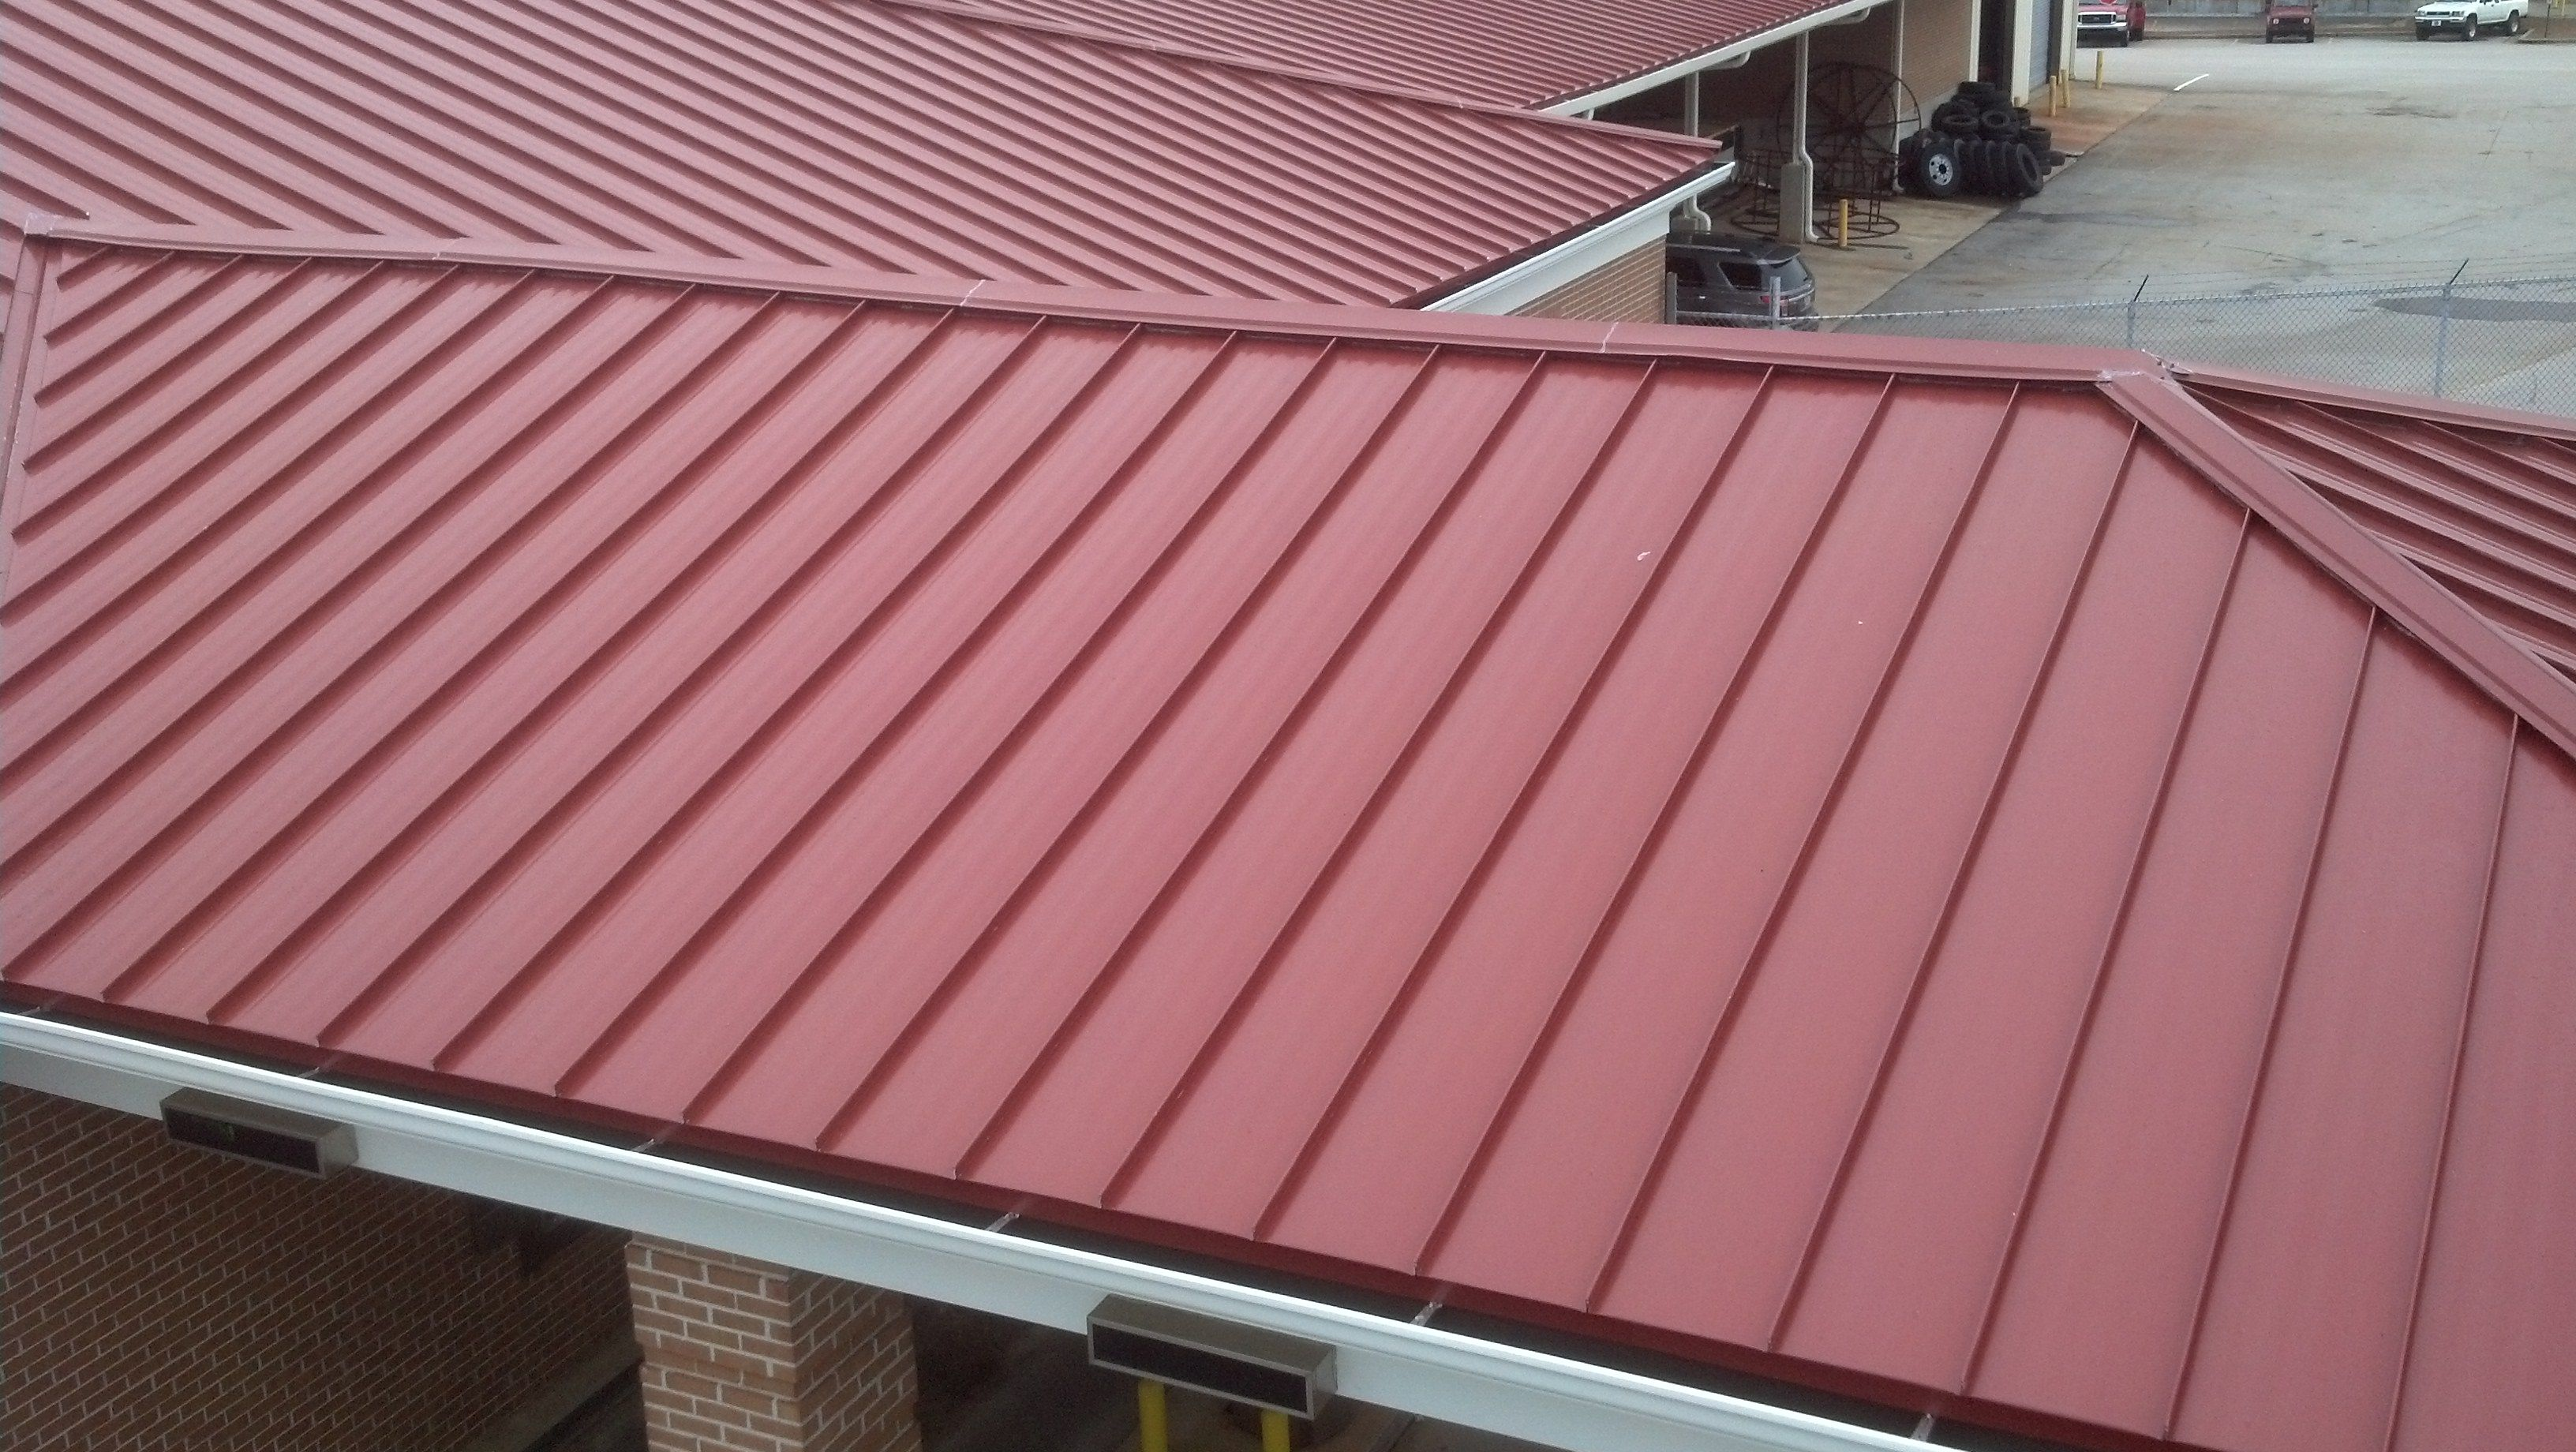 Commercial Metal Roofing - Jackson Metal Roofing - (478) 994-2252 ...